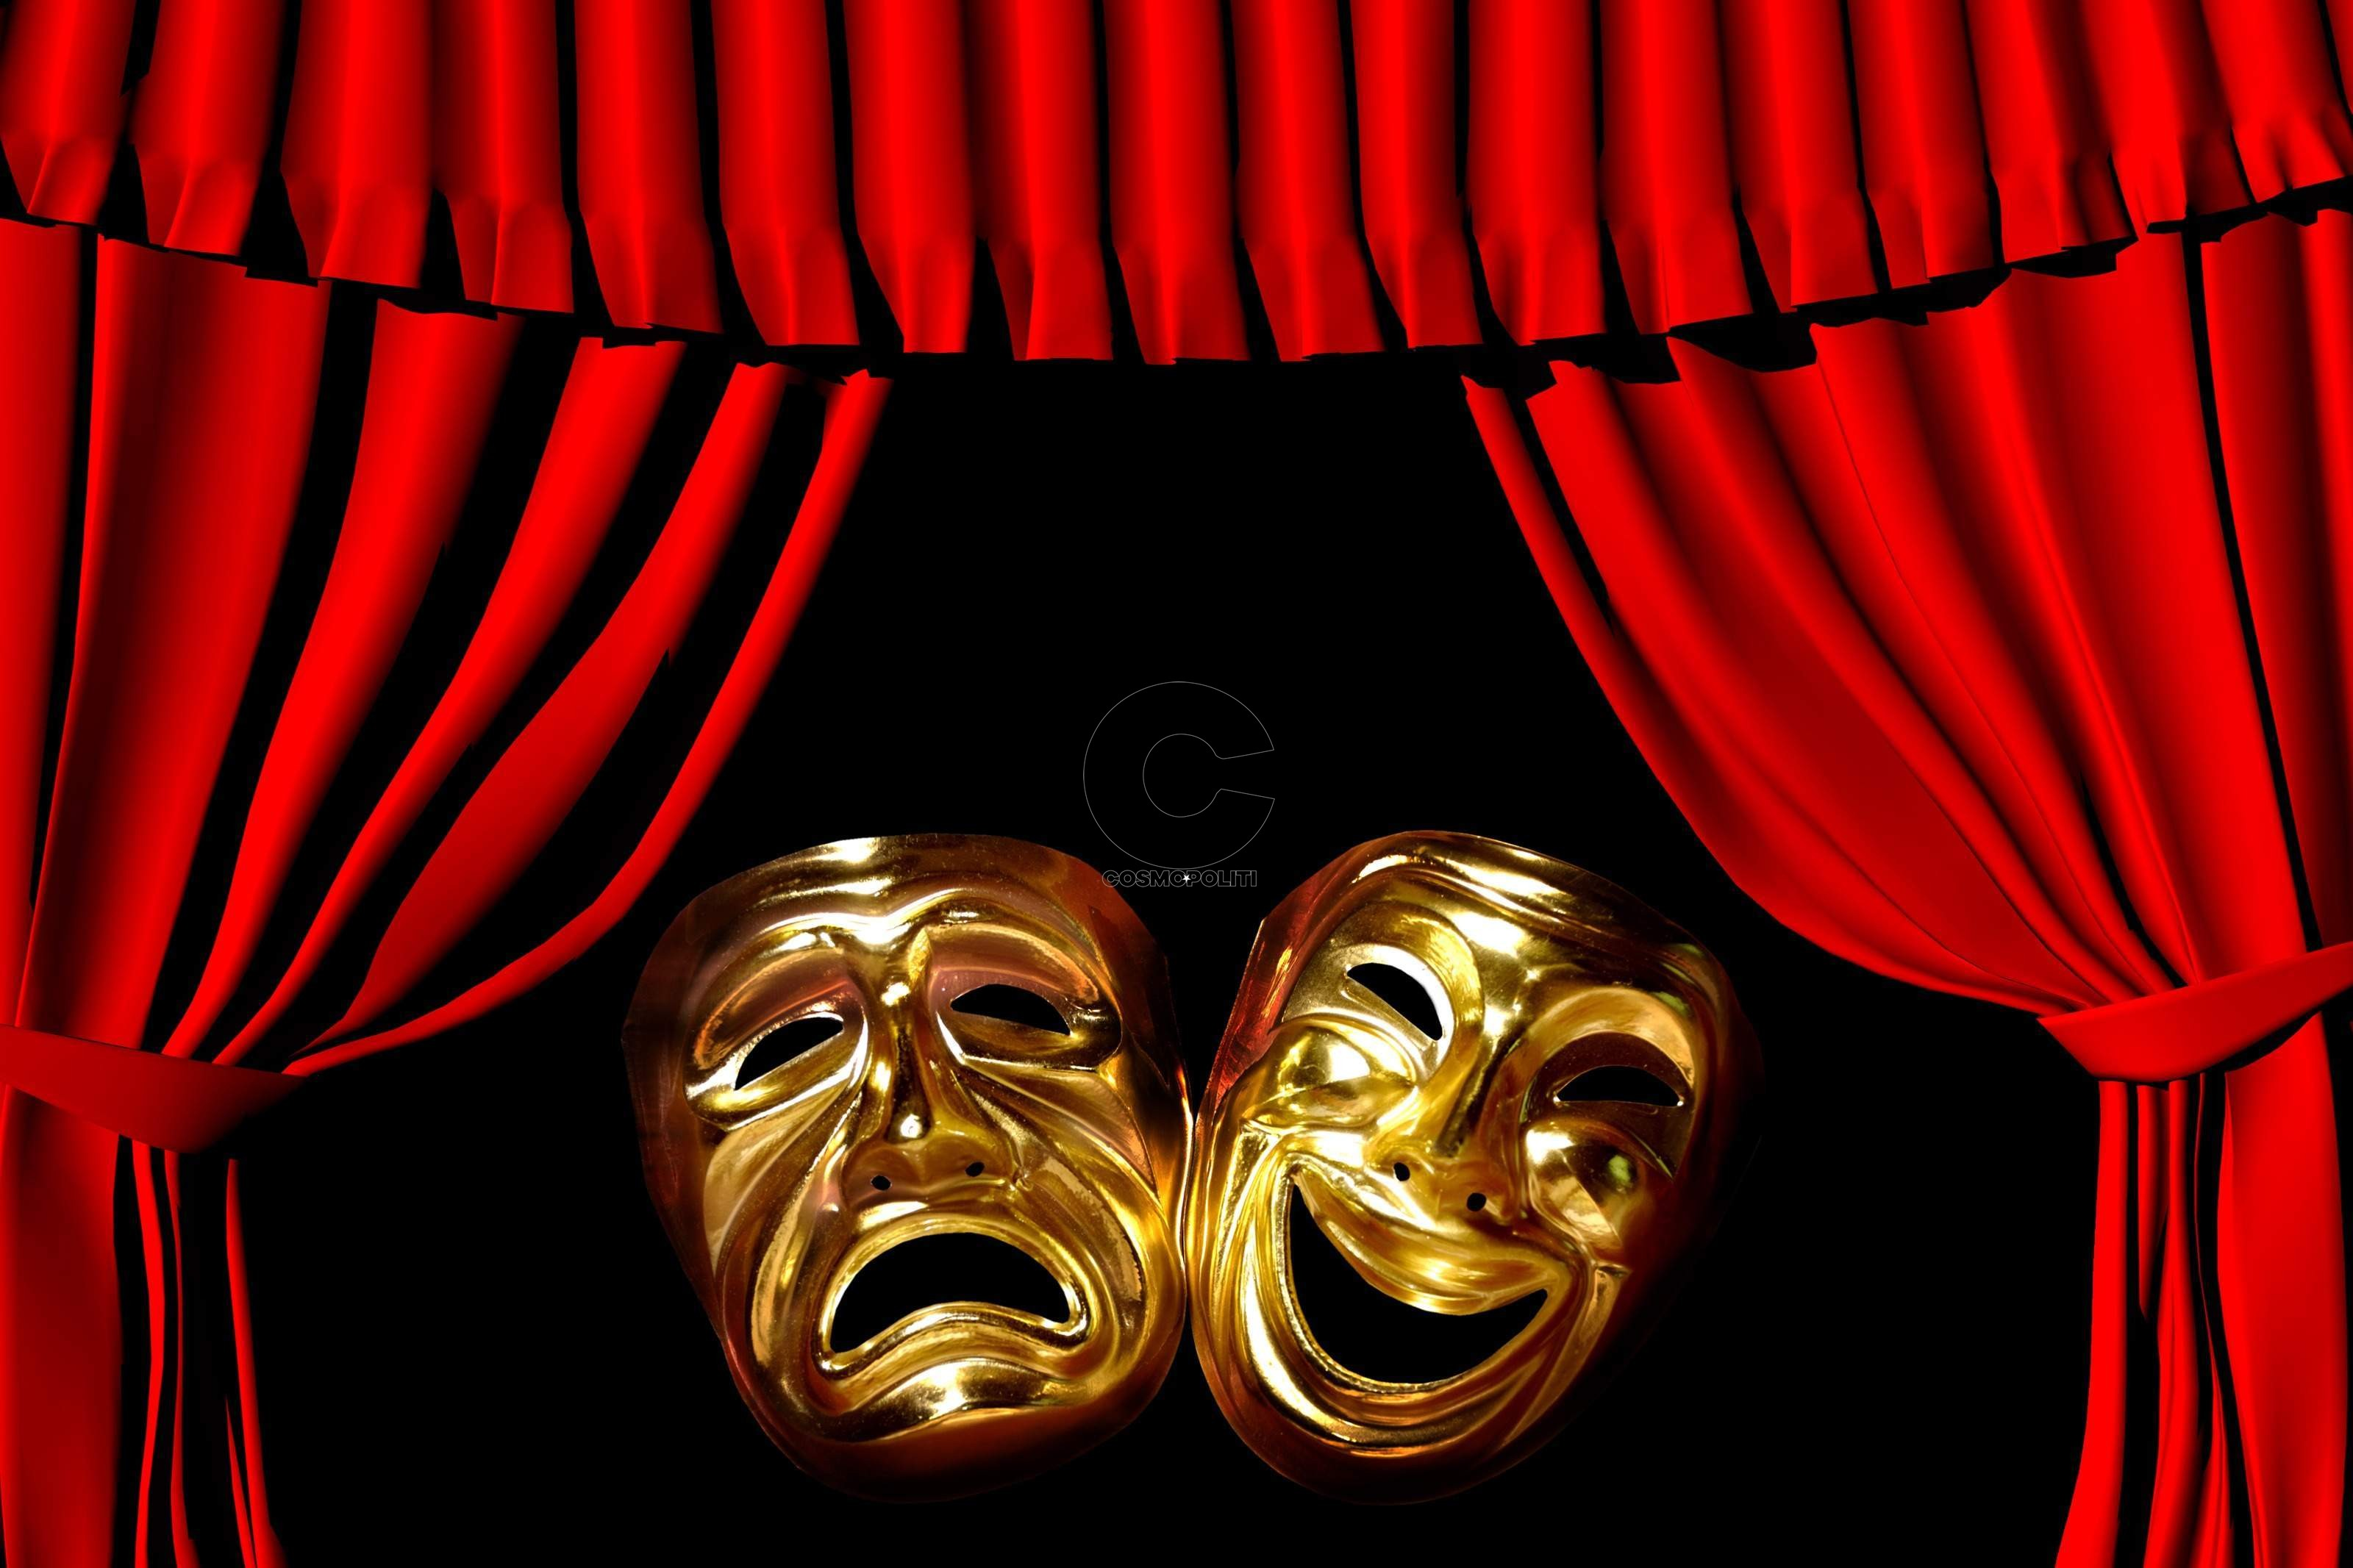 incredible-oneact-masters-at-cornerstone-theatre-arts-warwick-greenwood-pic-of-curtains-and-masks-trend-ideas_SXS_1154